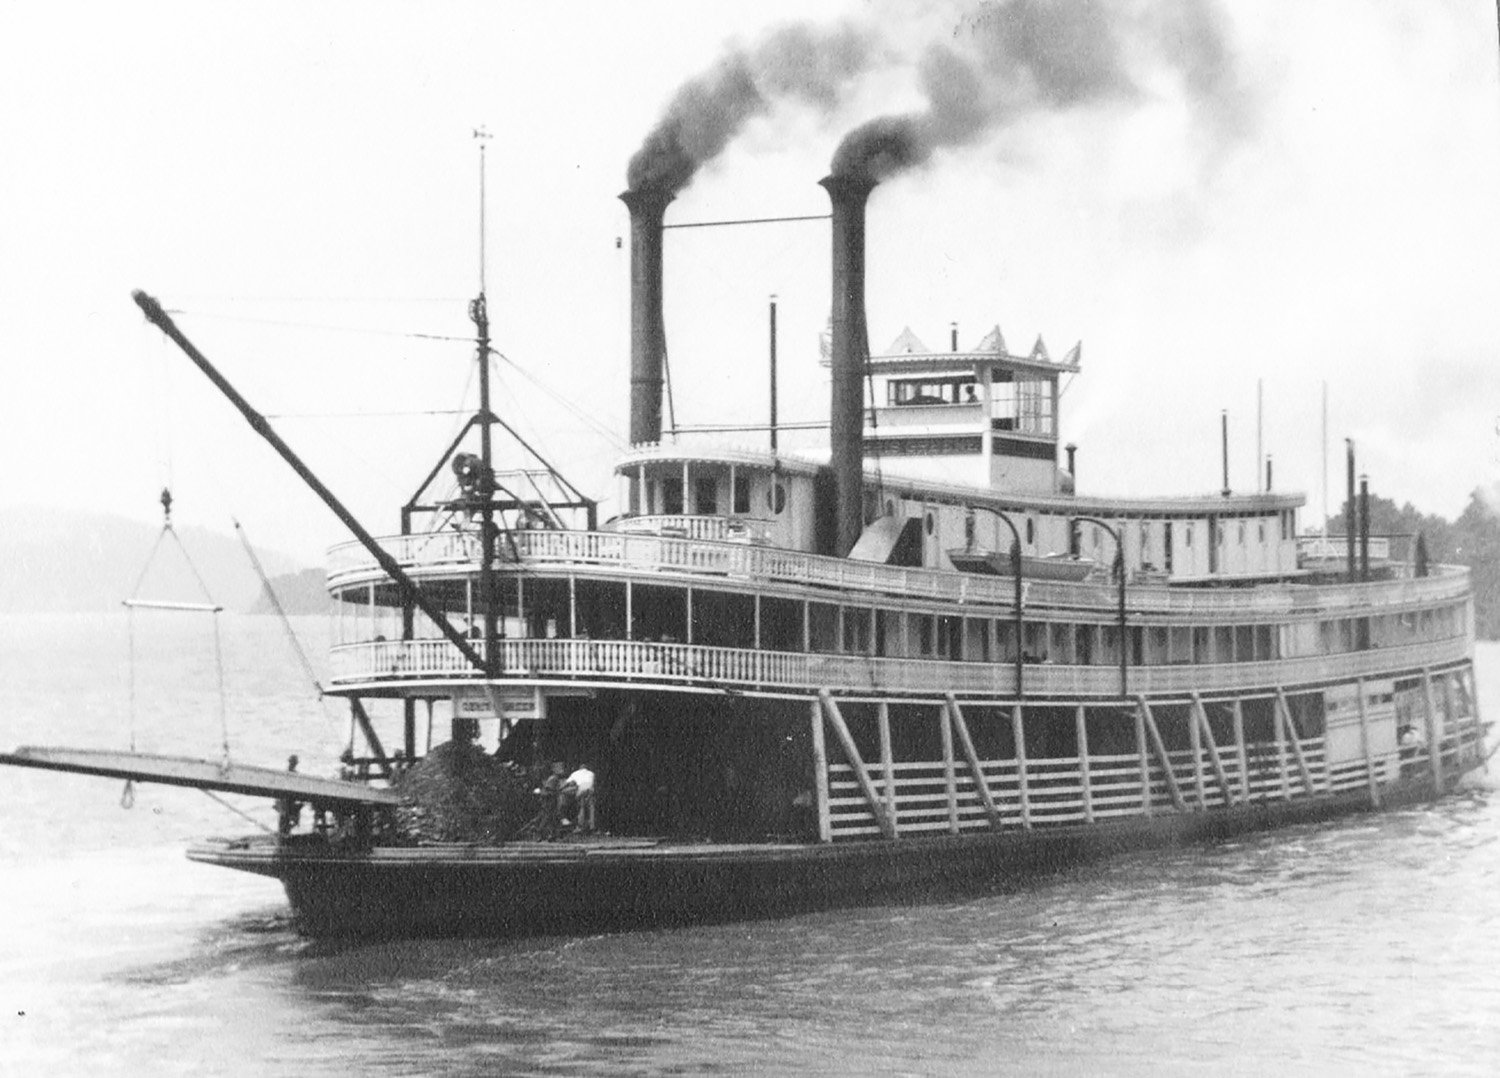 The second steamer Chris Greene. (Keith Norrington collection)